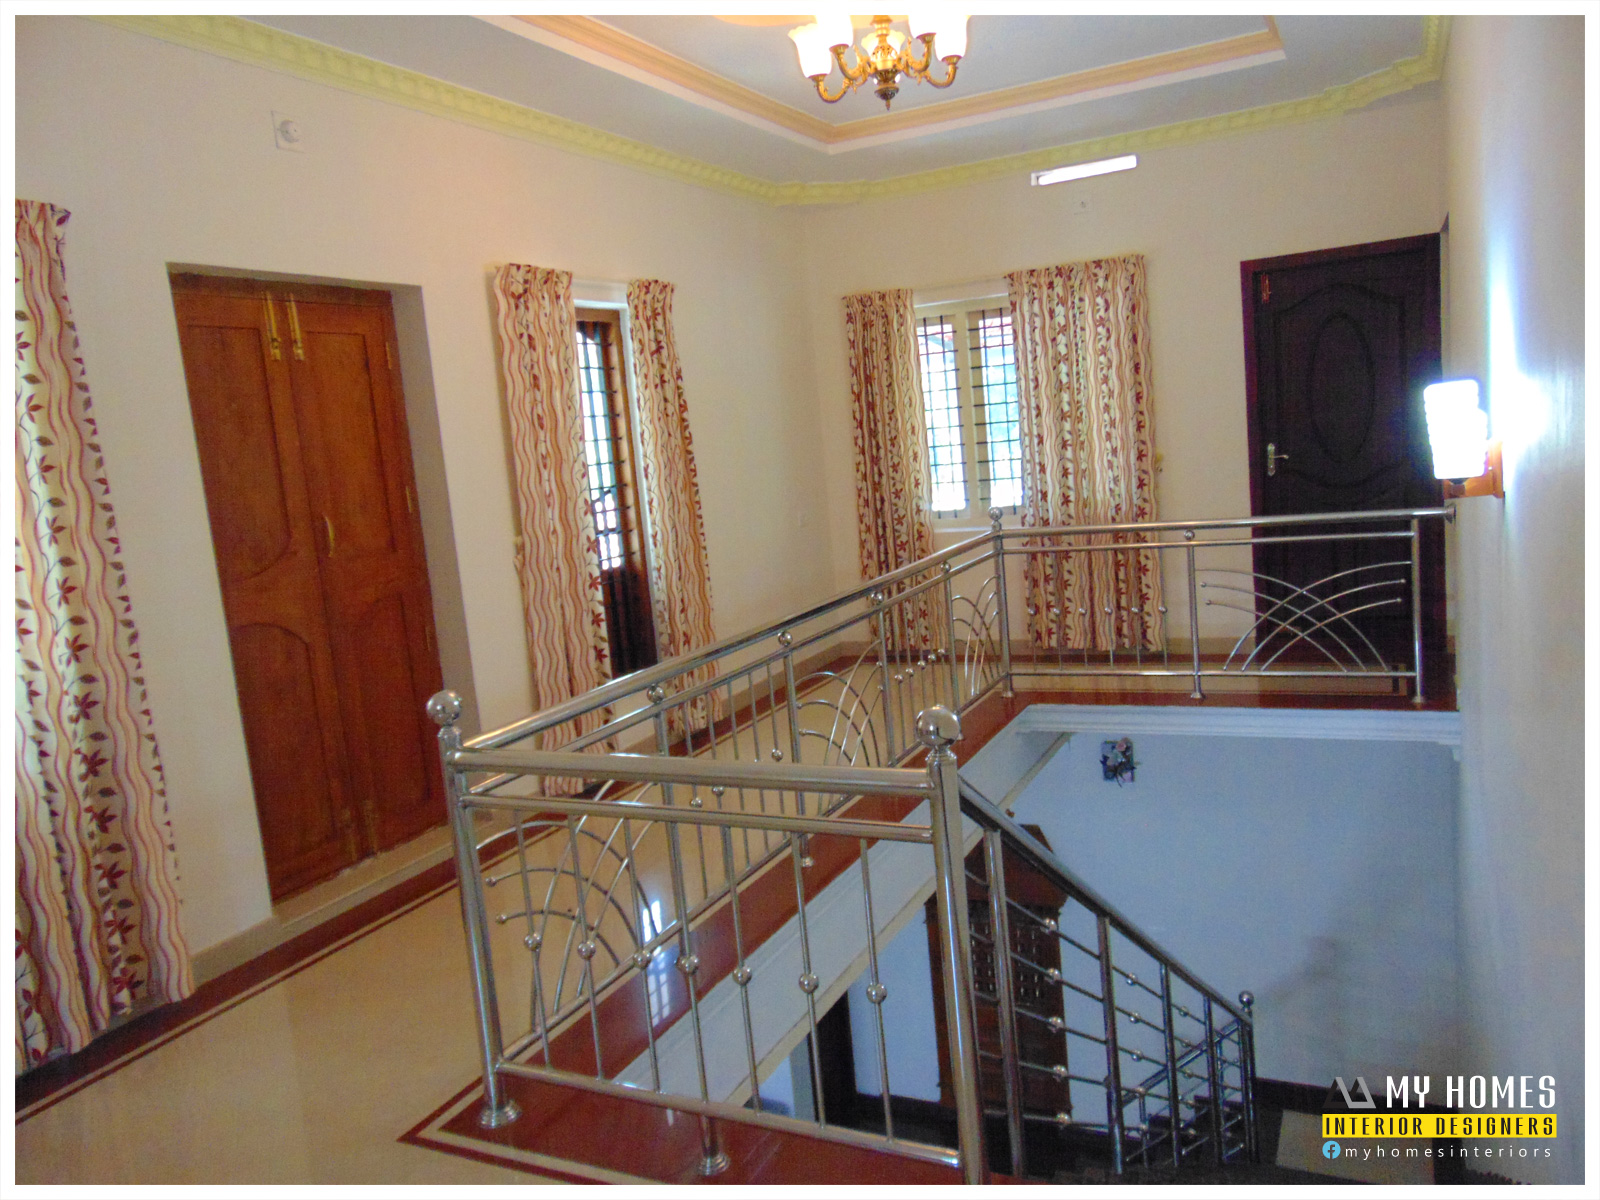 Kerala model house interior design images for New model house interior design